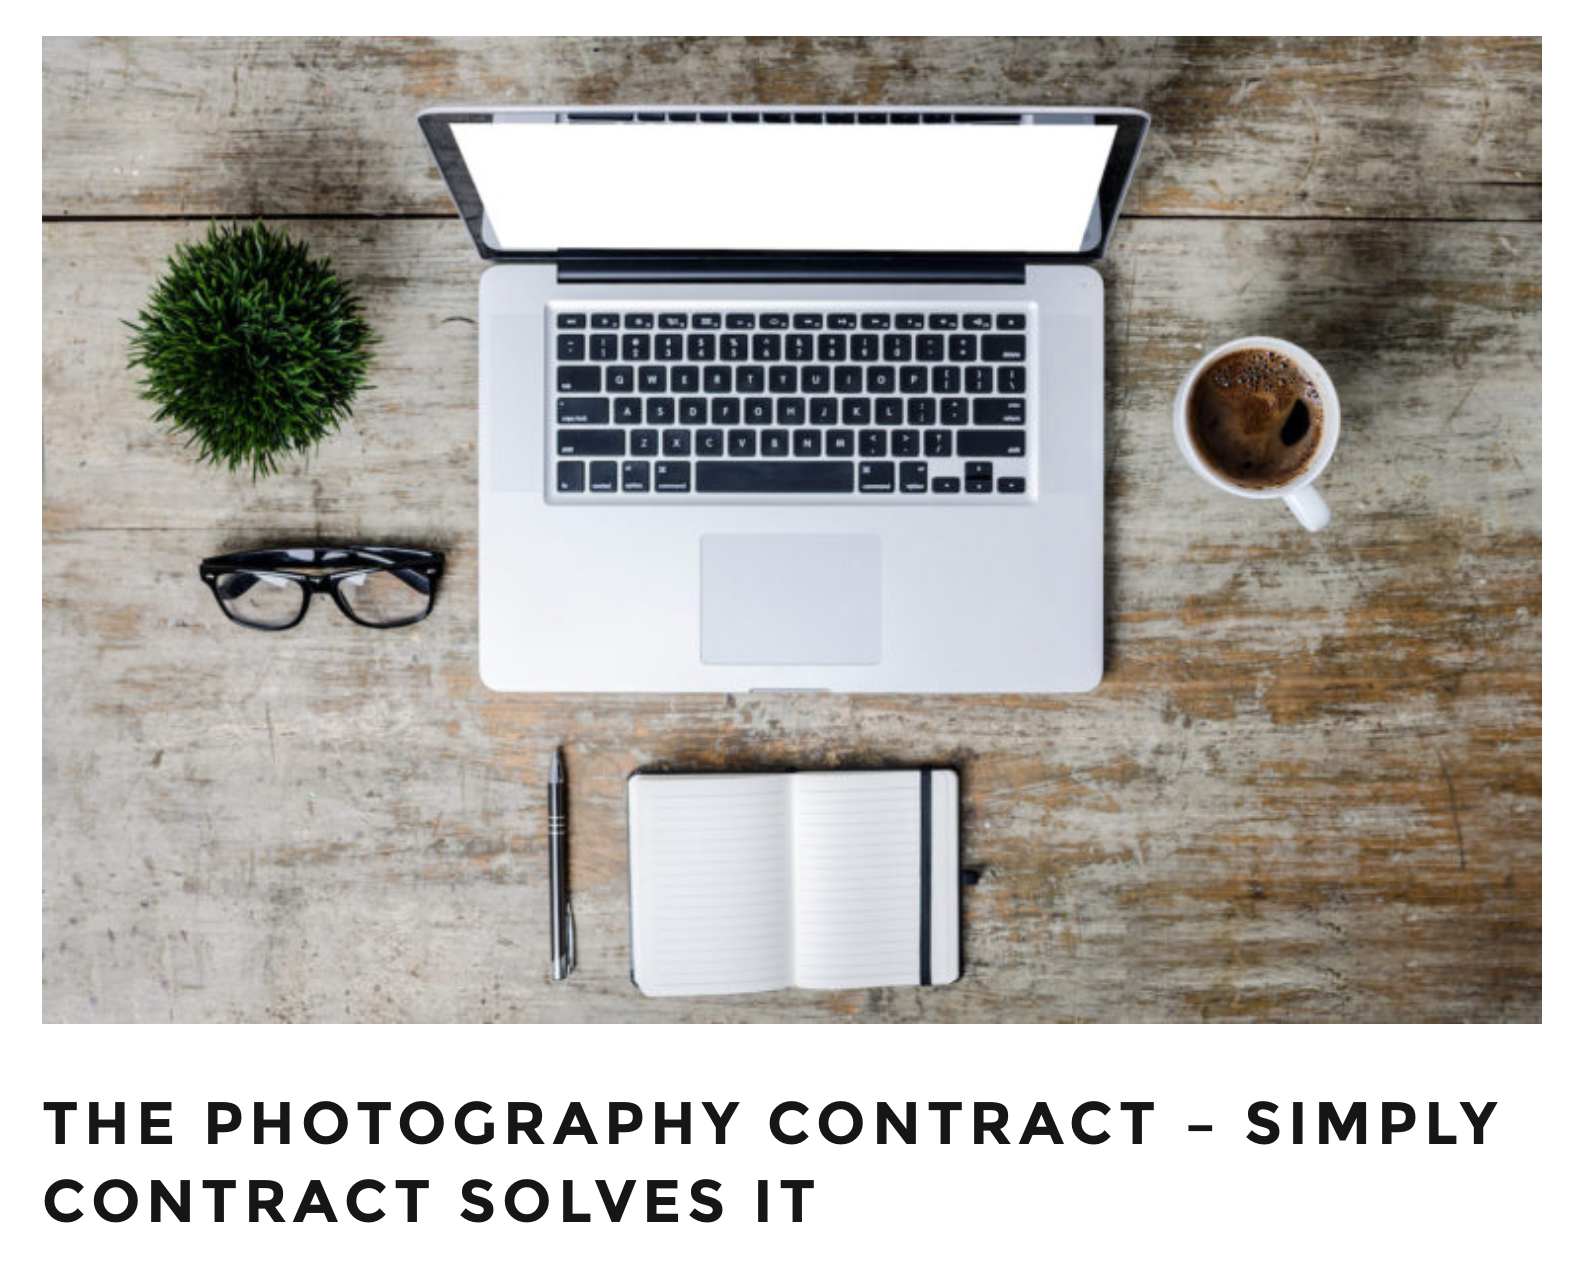 Independent review of Simply Contract by camera guru, the Brotographer - click on image for full review!